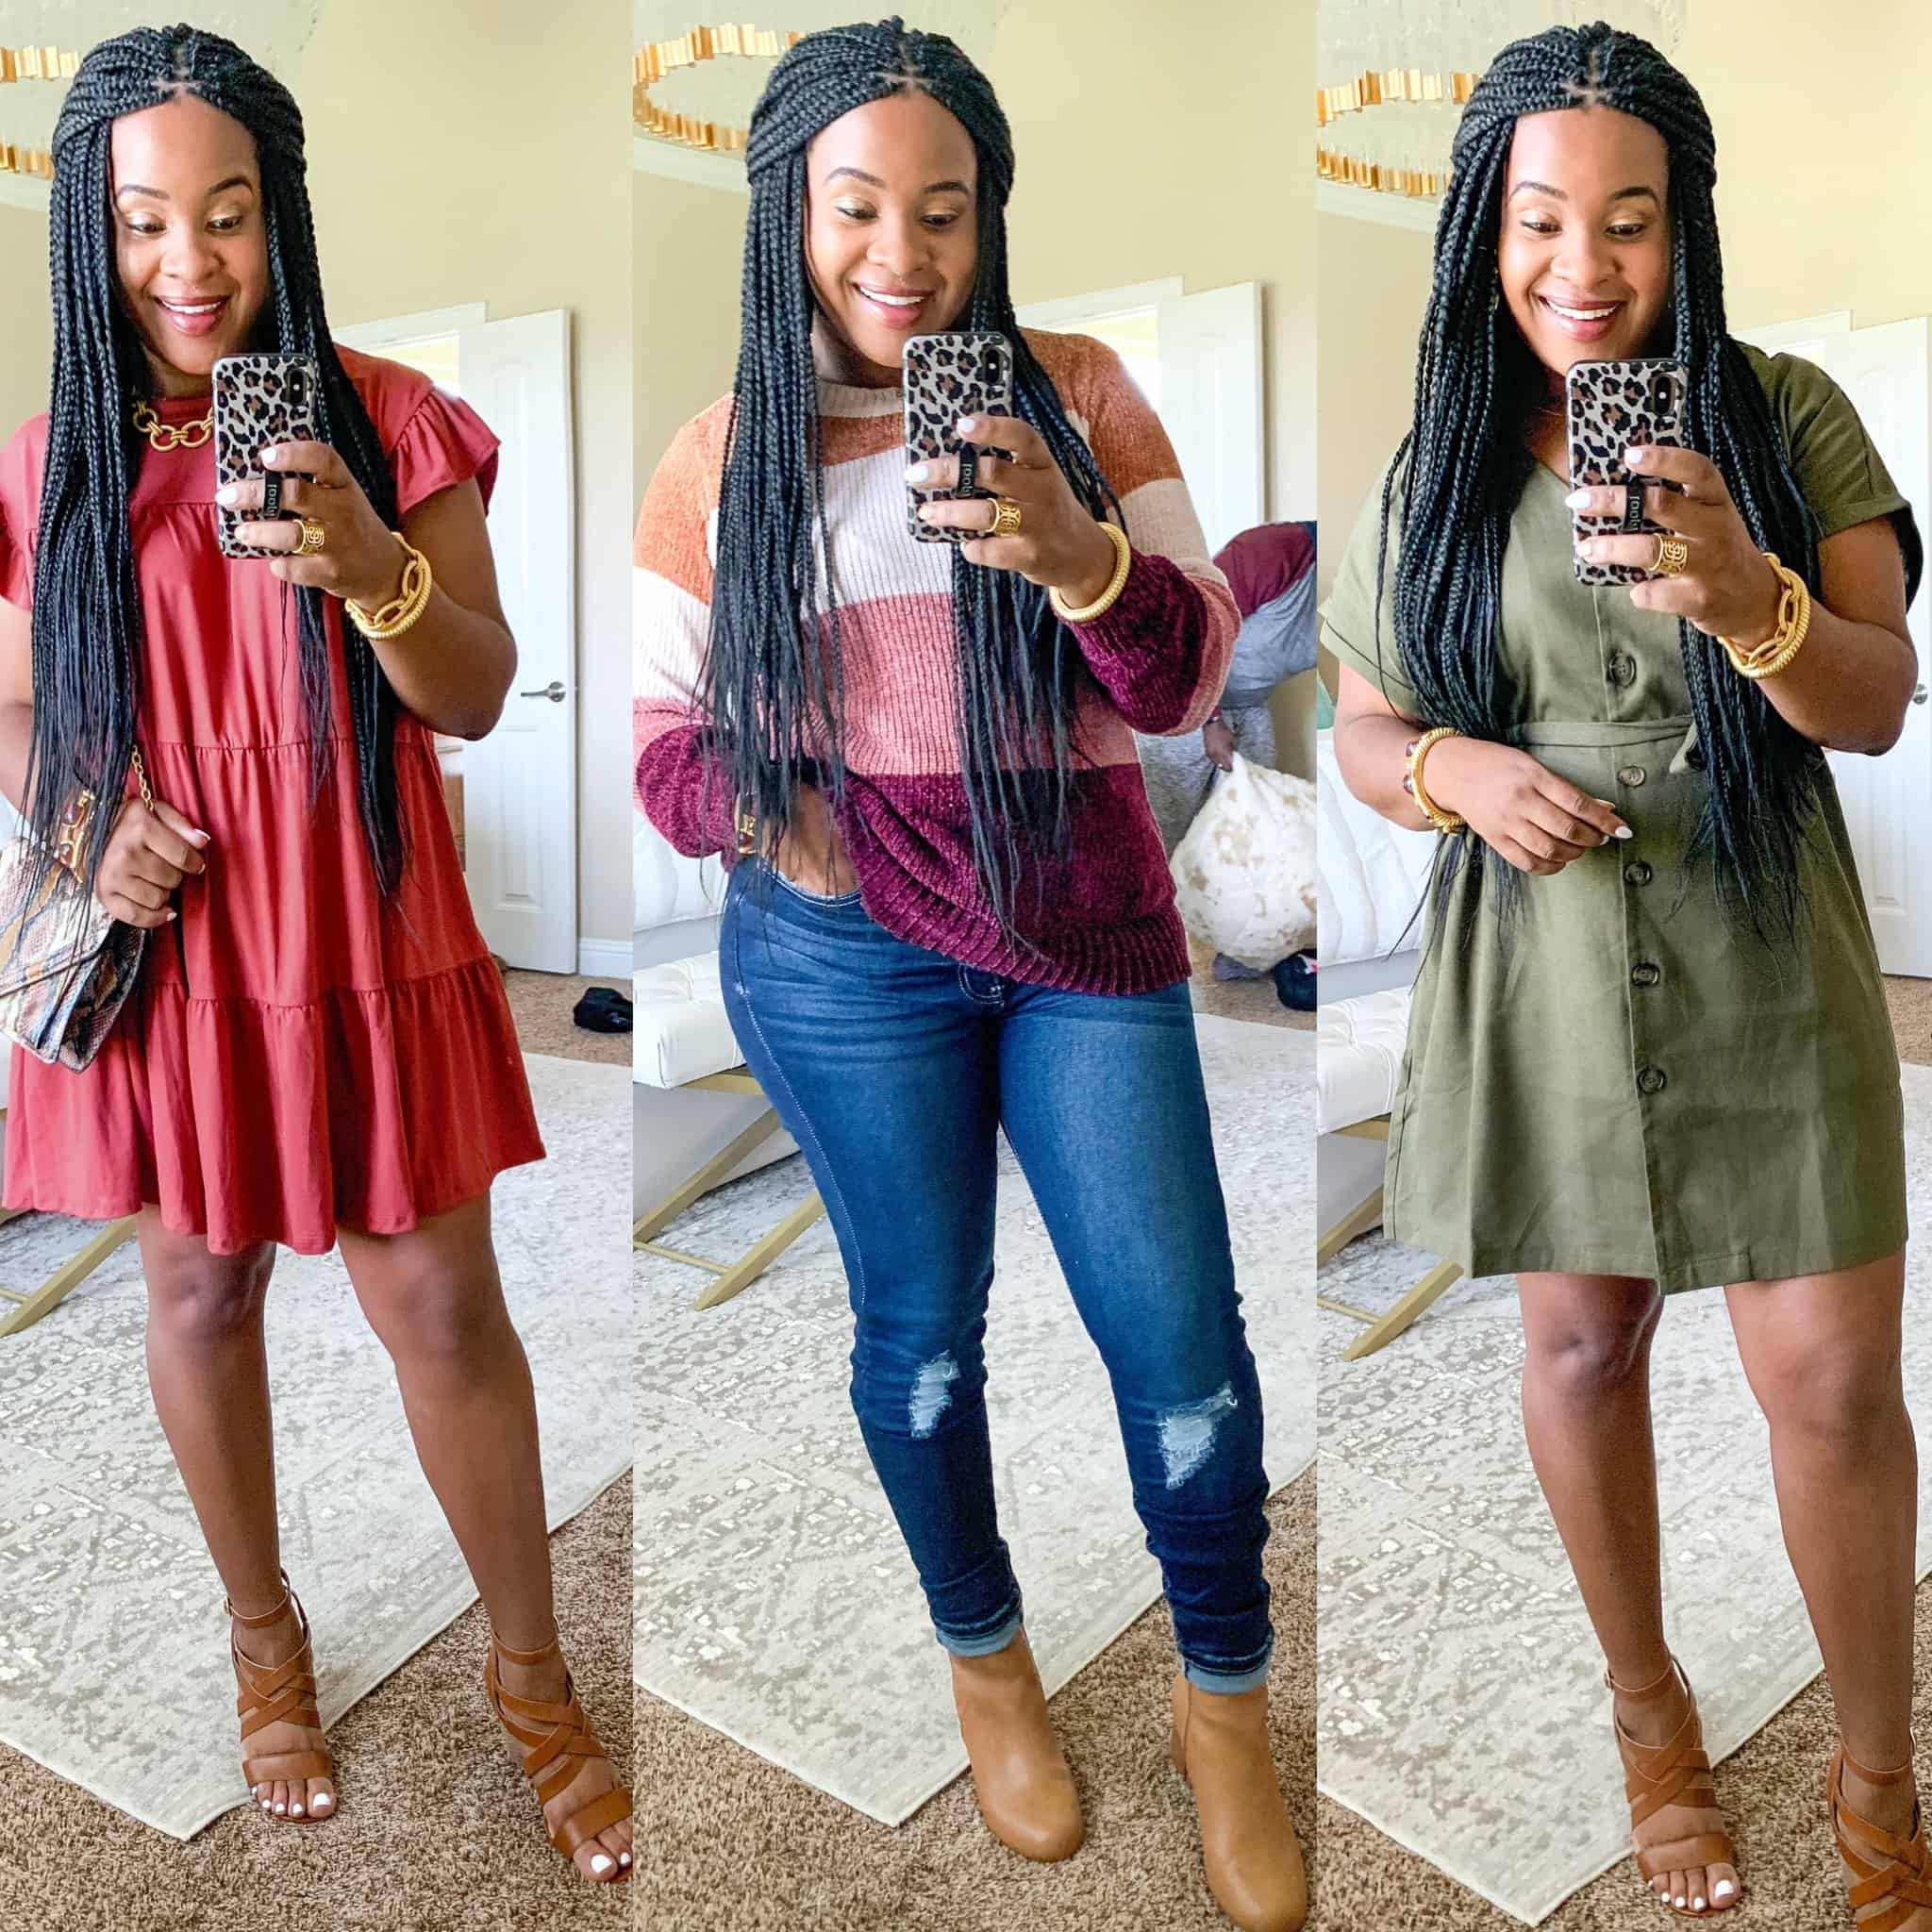 Red Dress Boutique Fall Collection 2 Try On by popular Dallas fashion blog, Glamorous Versatility: collage image of a woman wearing a Red Dress Boutique Sweet Persuasion Rosewood Dress, Go For Cozy Rose Multi Stripe Sweater, Have We Met Dark Wash Distressed Curvy Skinny Jeans, and Prove Your Actions Olive Dress.